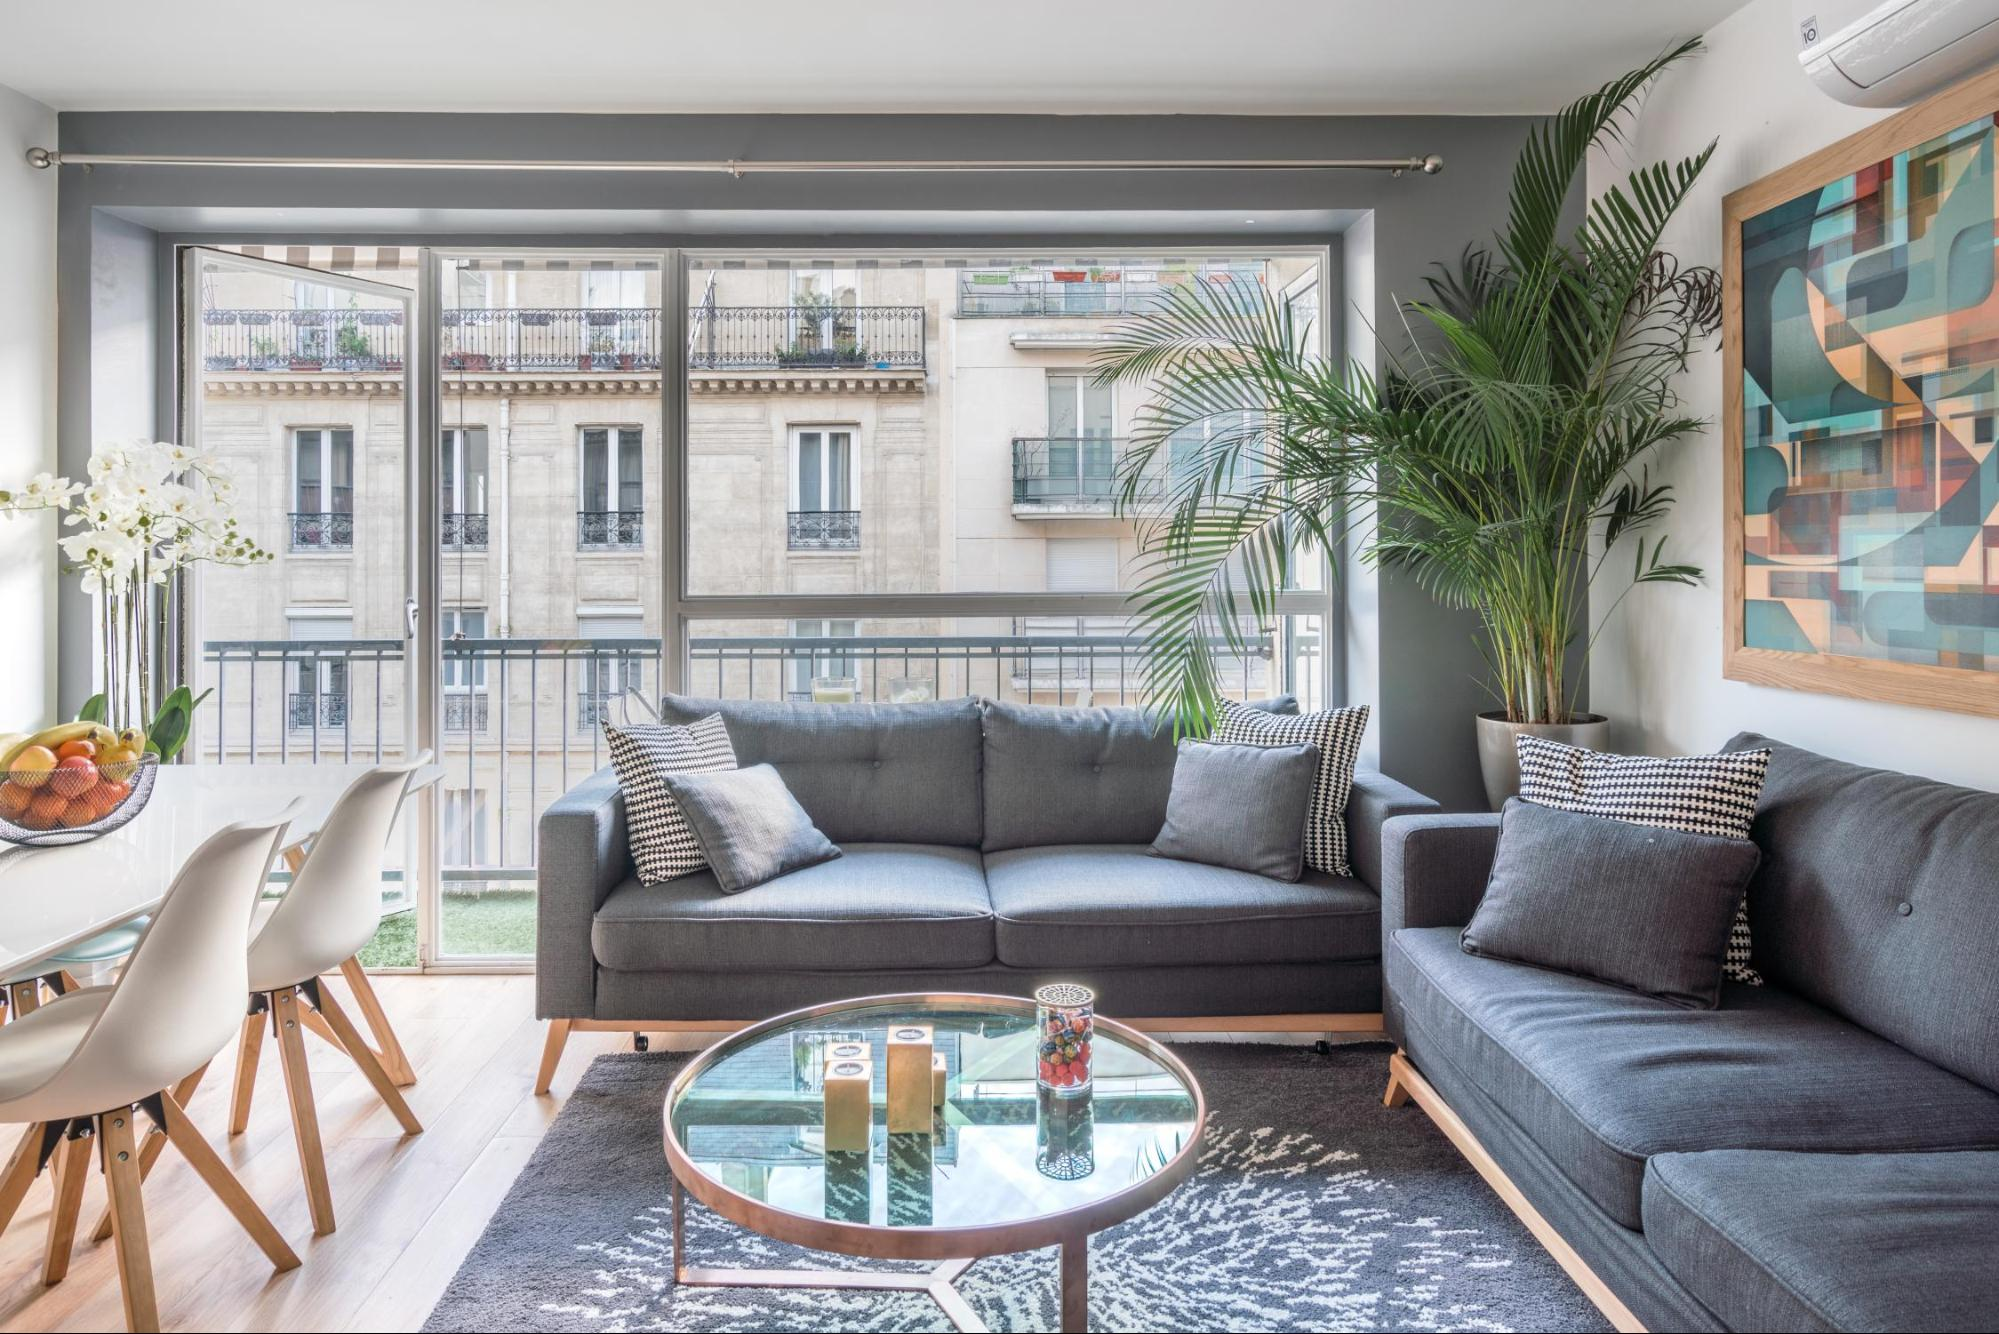 These 10 Airbnbs in Paris Will Take Your Breath Away